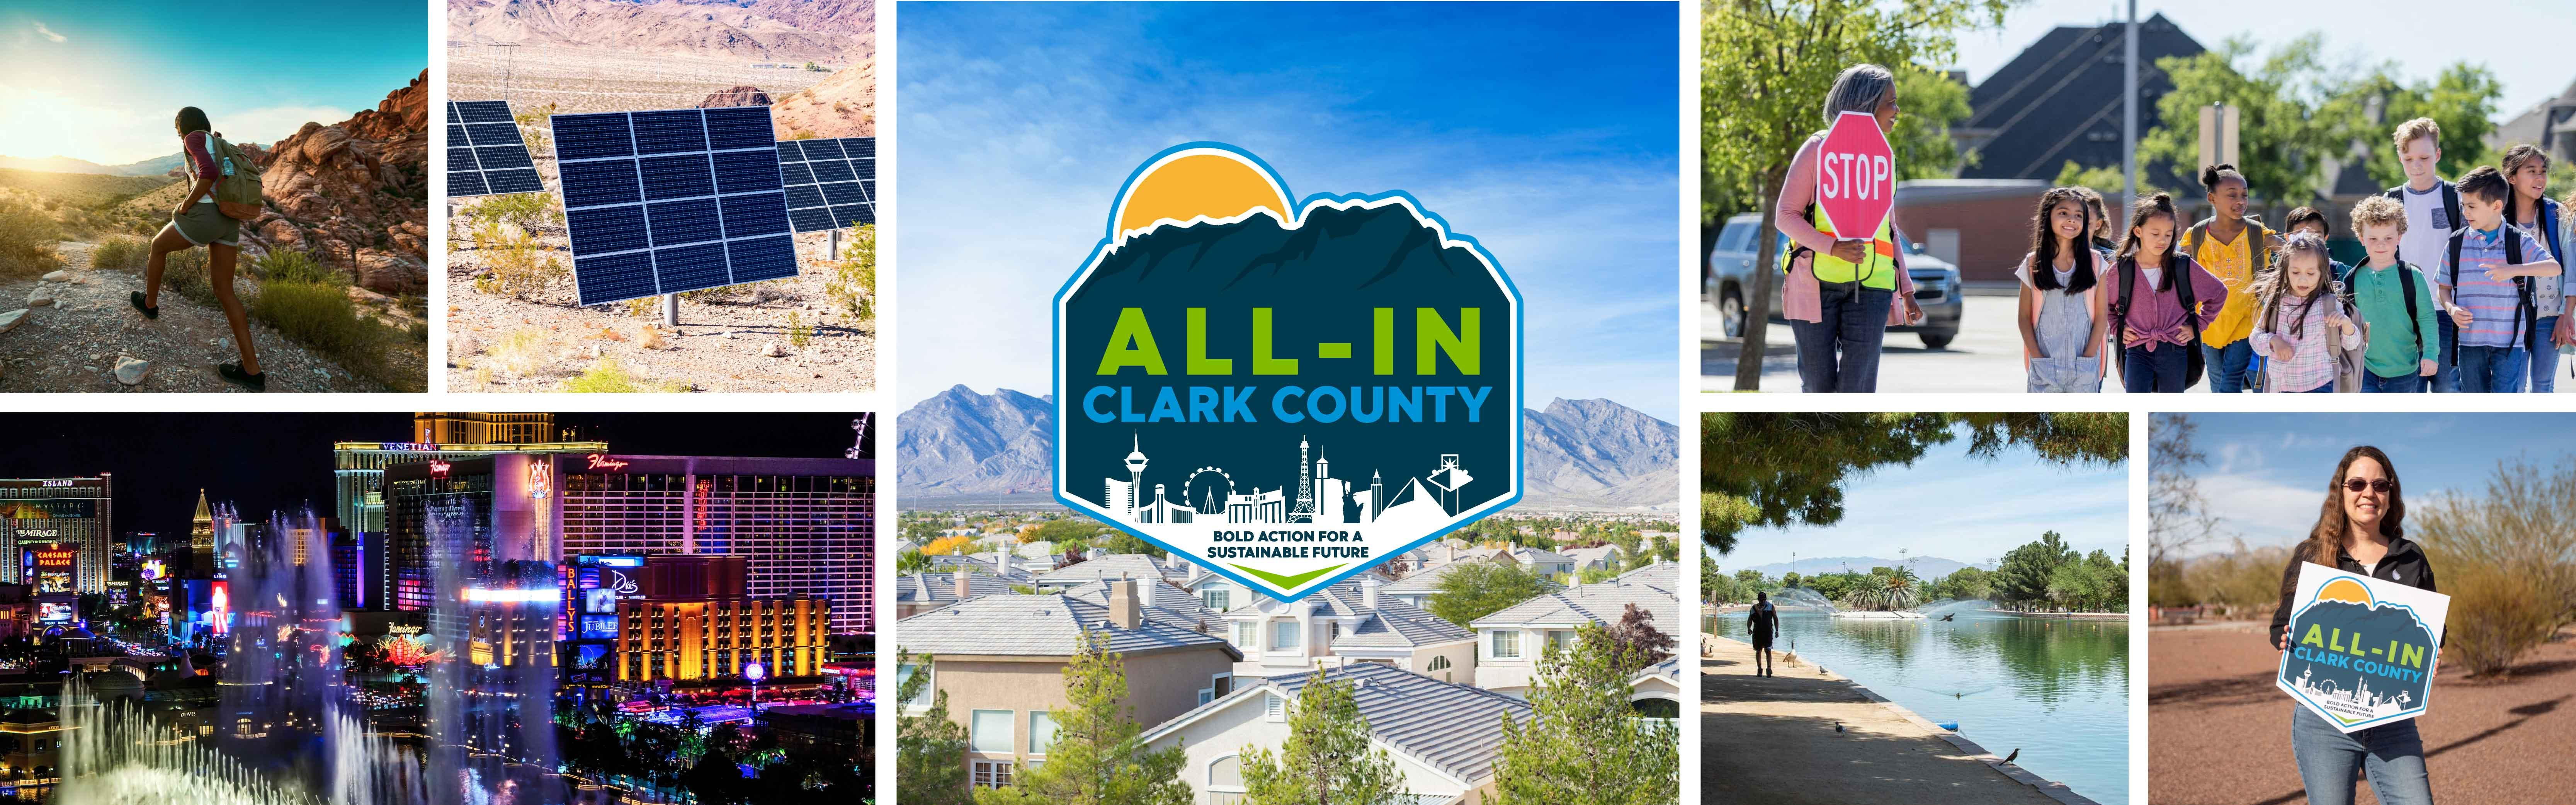 Photo collage of different scenes around Clark County including downtown Las Vegas, a woman hiking, solar panels, school children at a crosswalk, a woman holding the All-In logo sign, and the main center image is All-In logo.